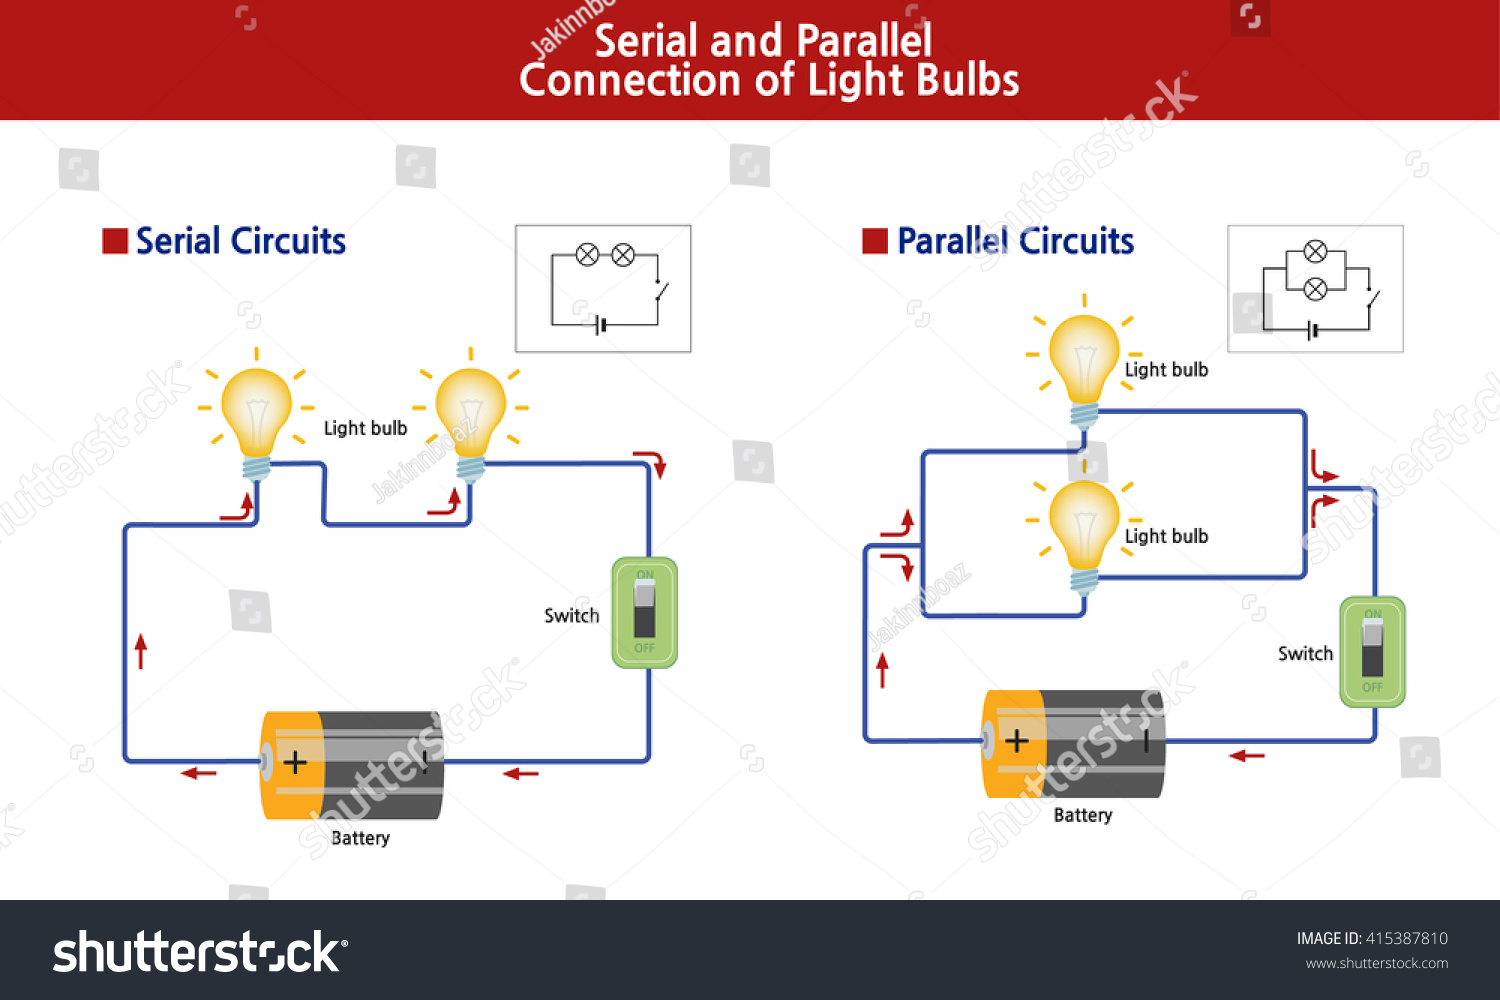 hight resolution of shows the diagram of serial and parallel lightbulb circuits showing wires light bulbs batteries